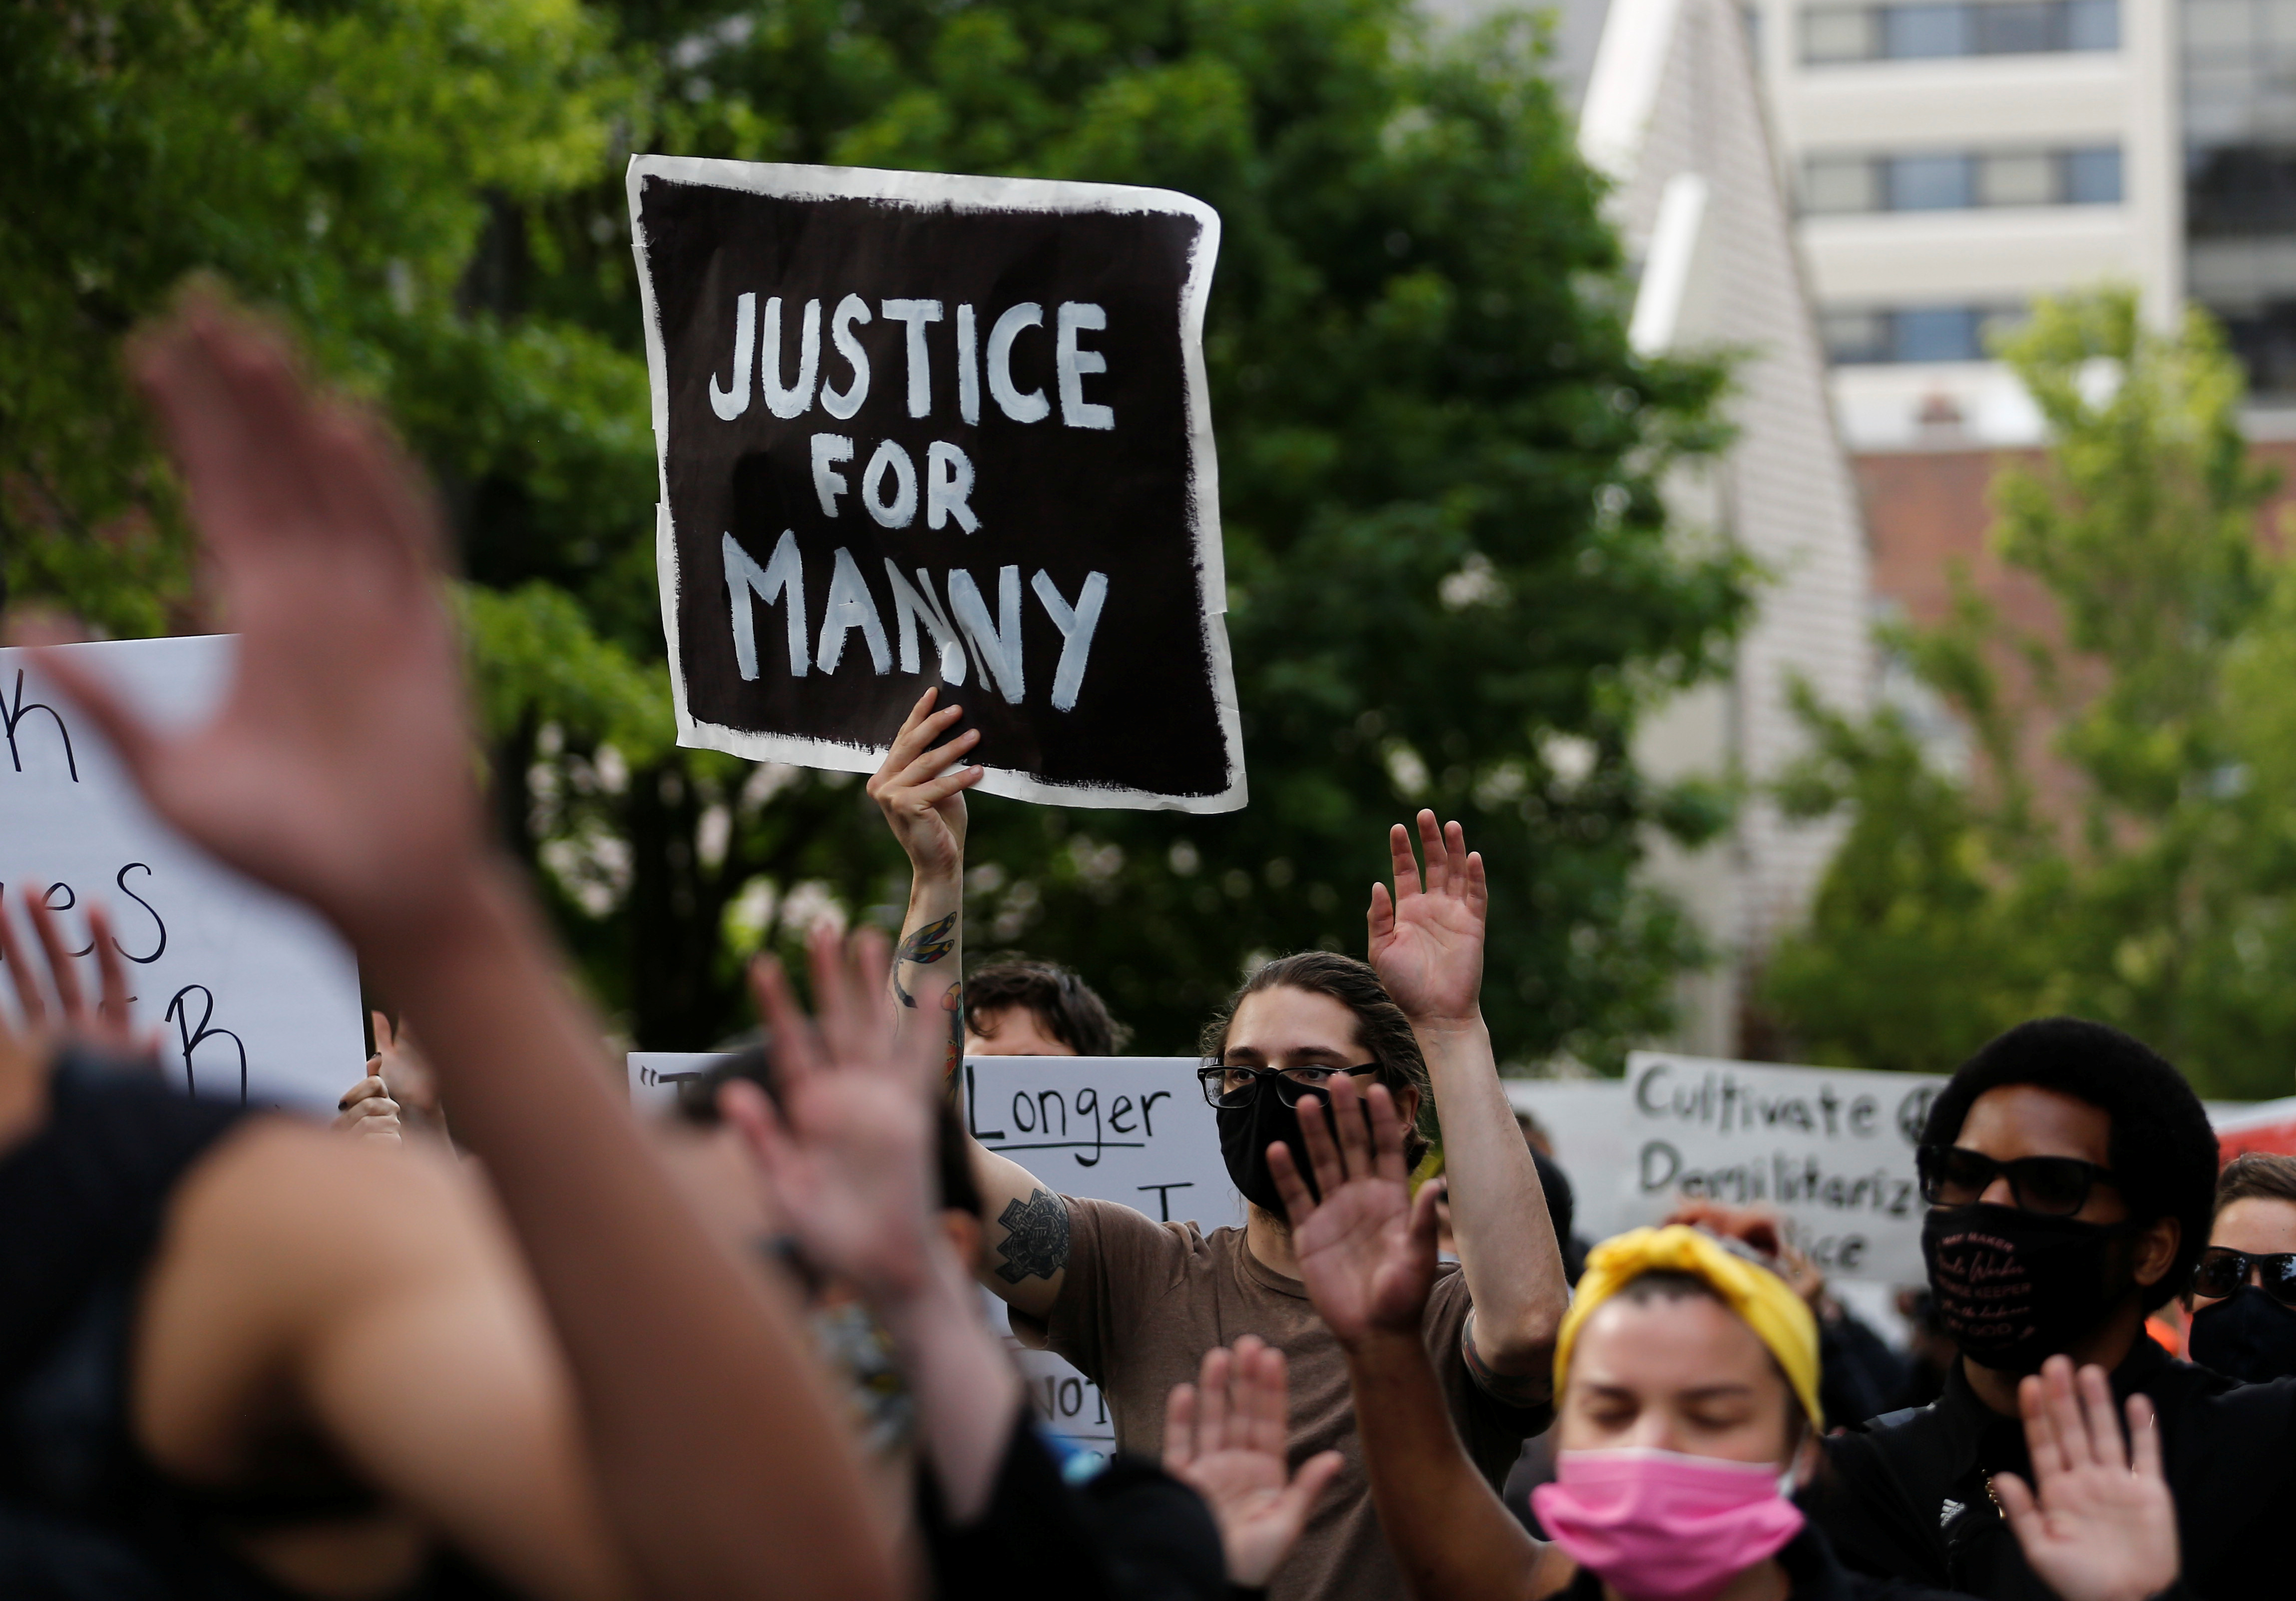 A protester holds a